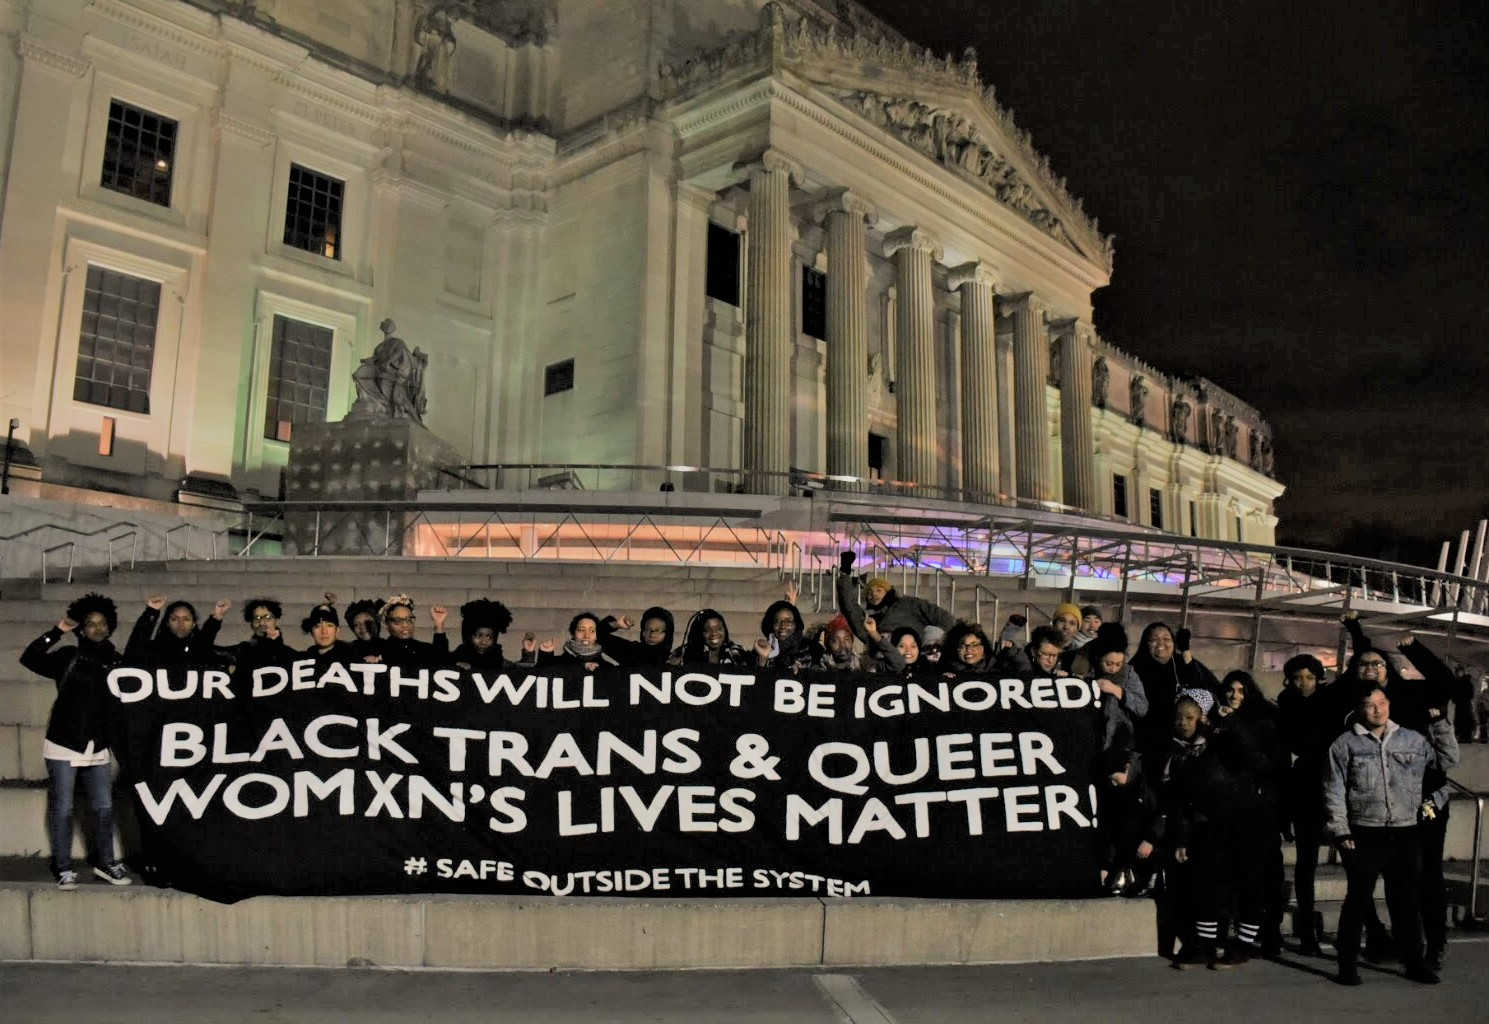 Brooklyn banner drop honors murdered Black trans and queer women the media ignored